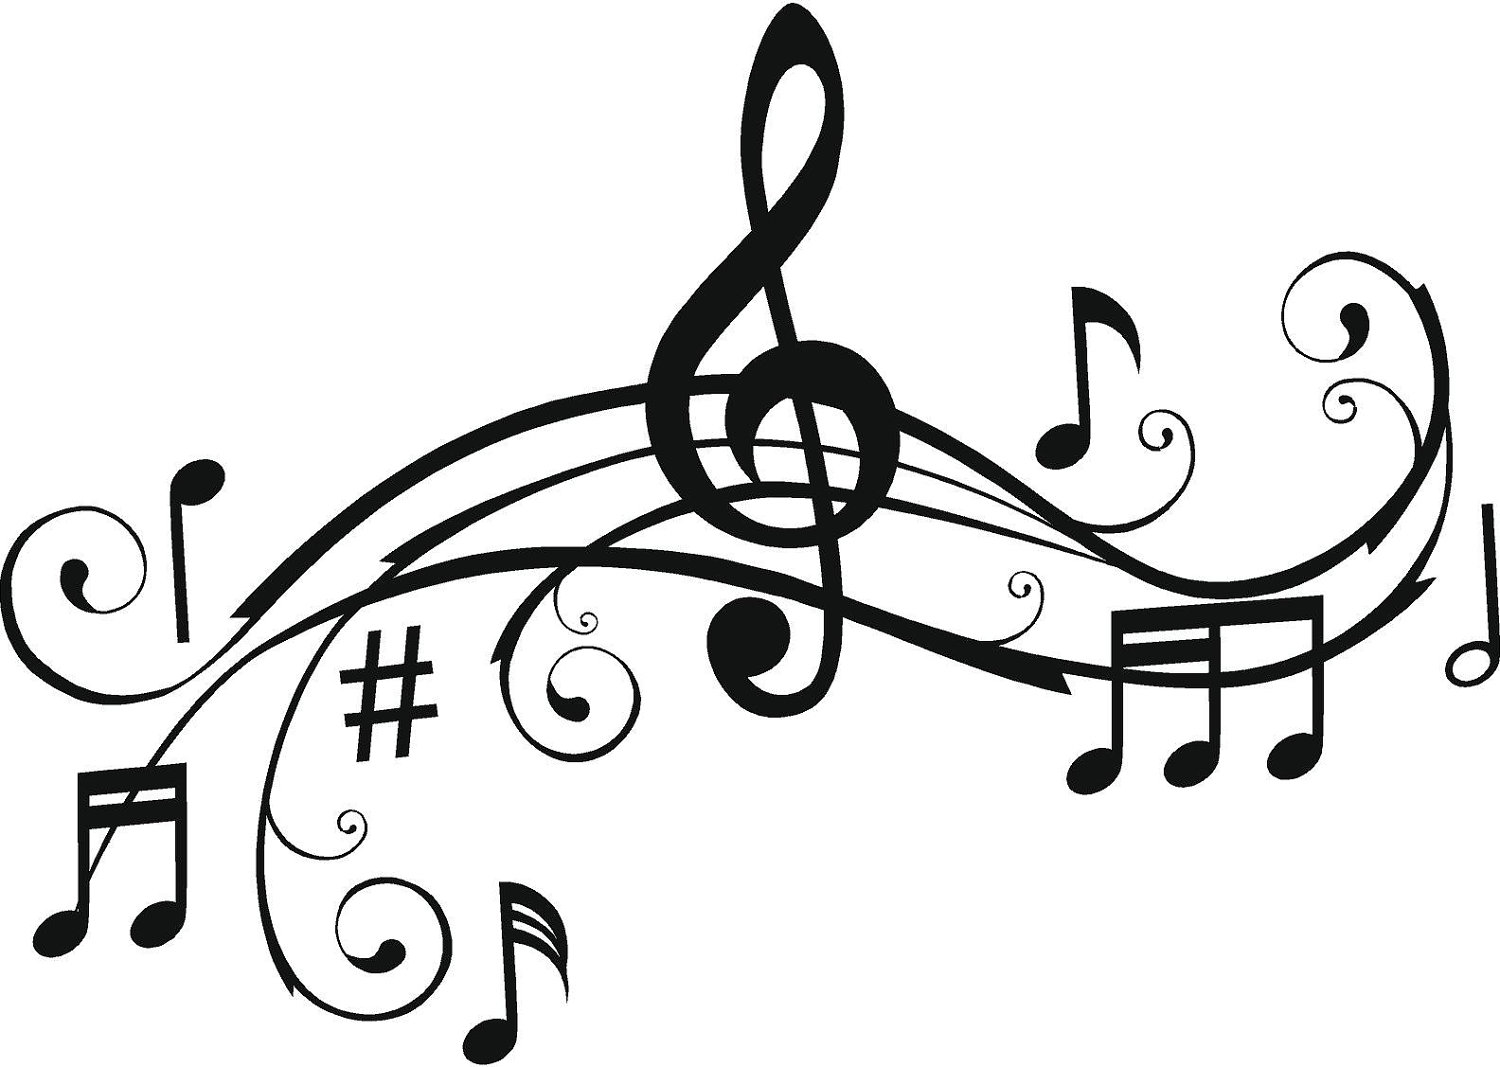 Légend image in printable music notes symbols